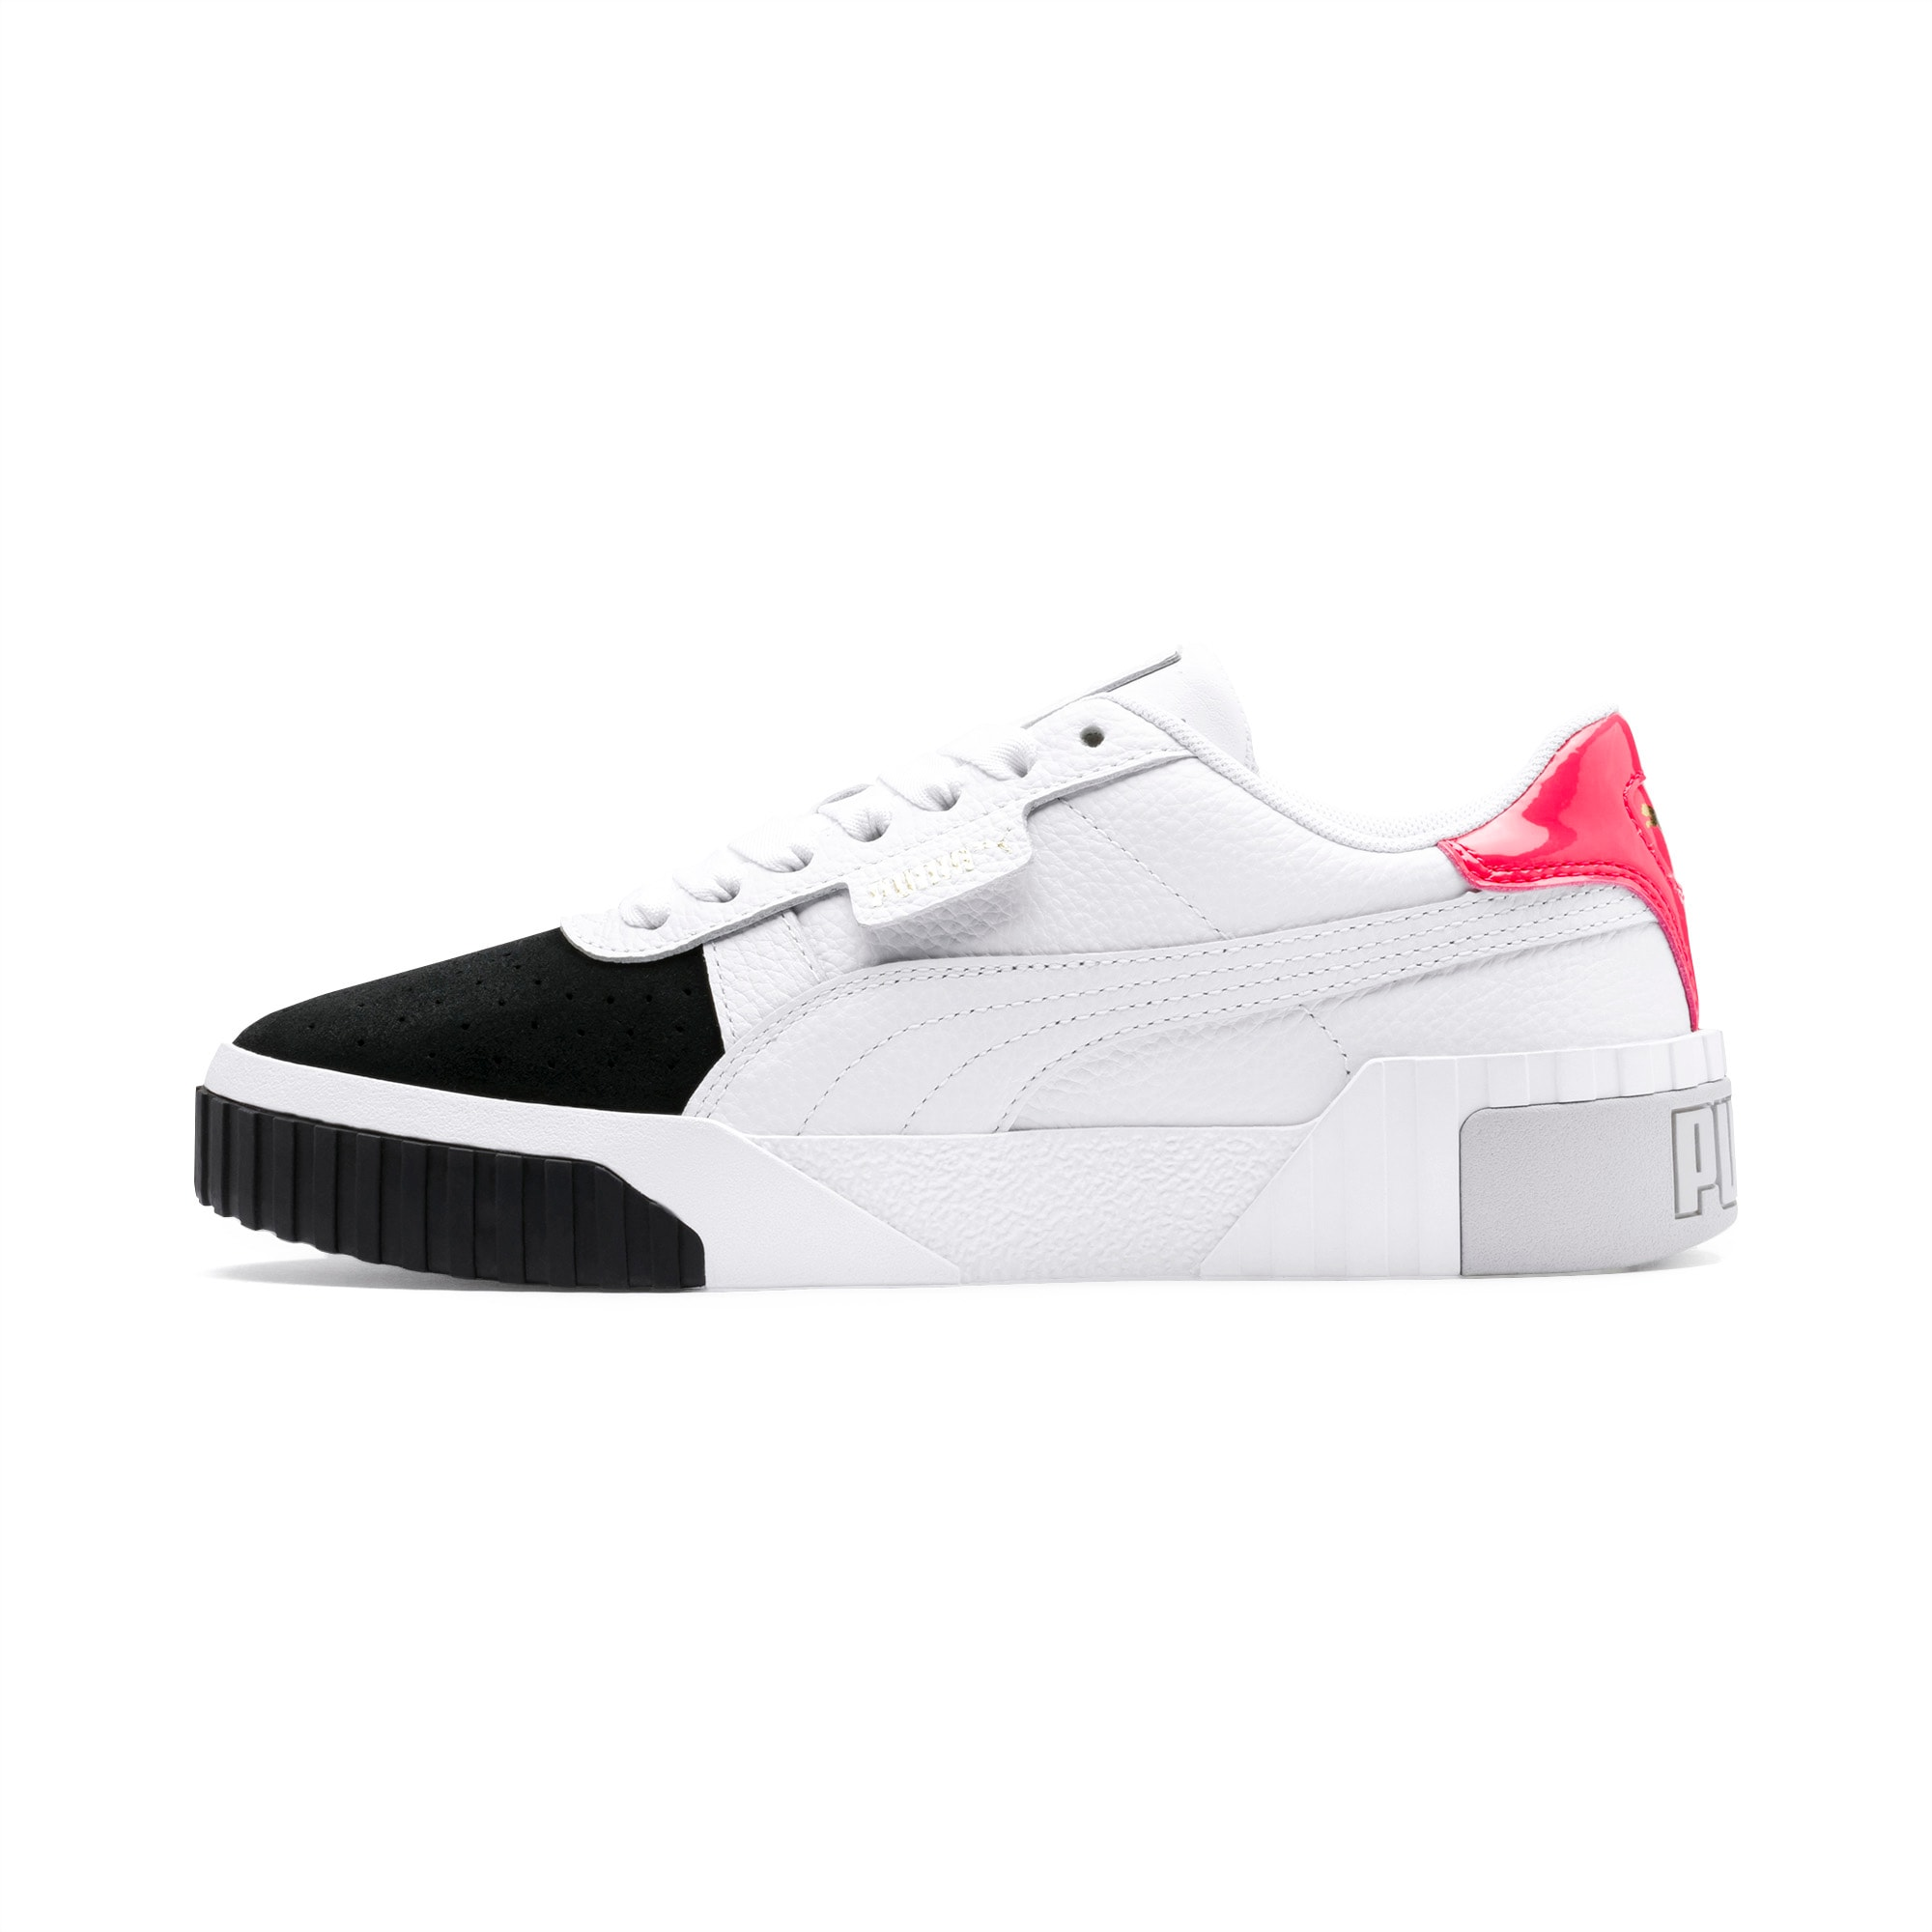 Cali Remix Women's Sneakers